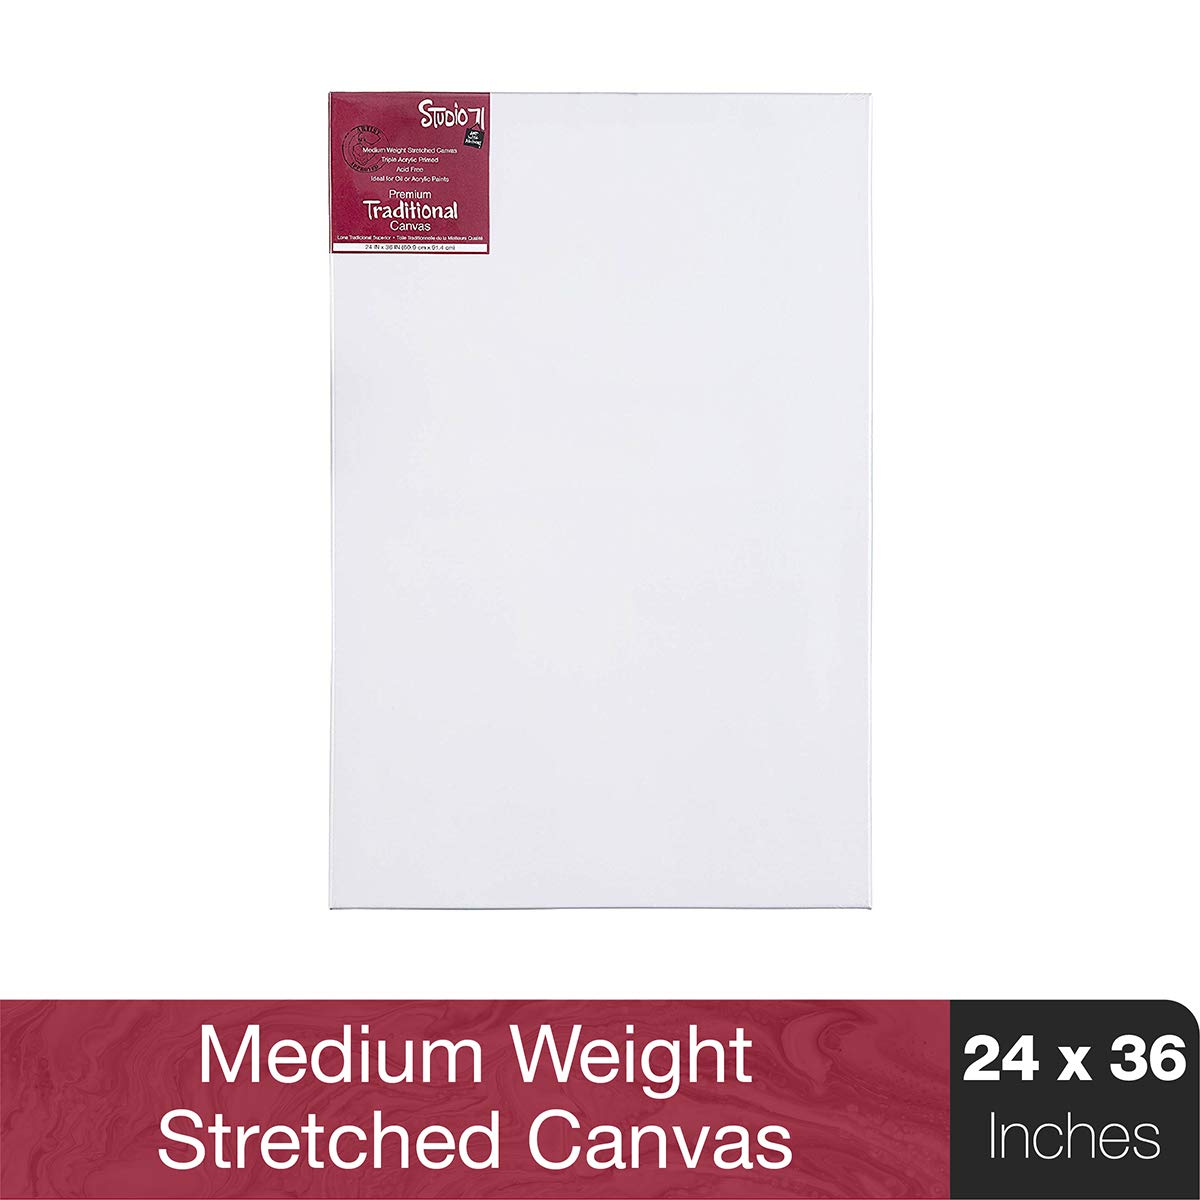 """Studio 71 Medium Weight Traditional Stretched Canvas–24"""" x 36"""" Painting Canvas for Oil or Acrylic Paints, Triple Acrylic Primed Wood Frame Canvas, Acid-Free"""